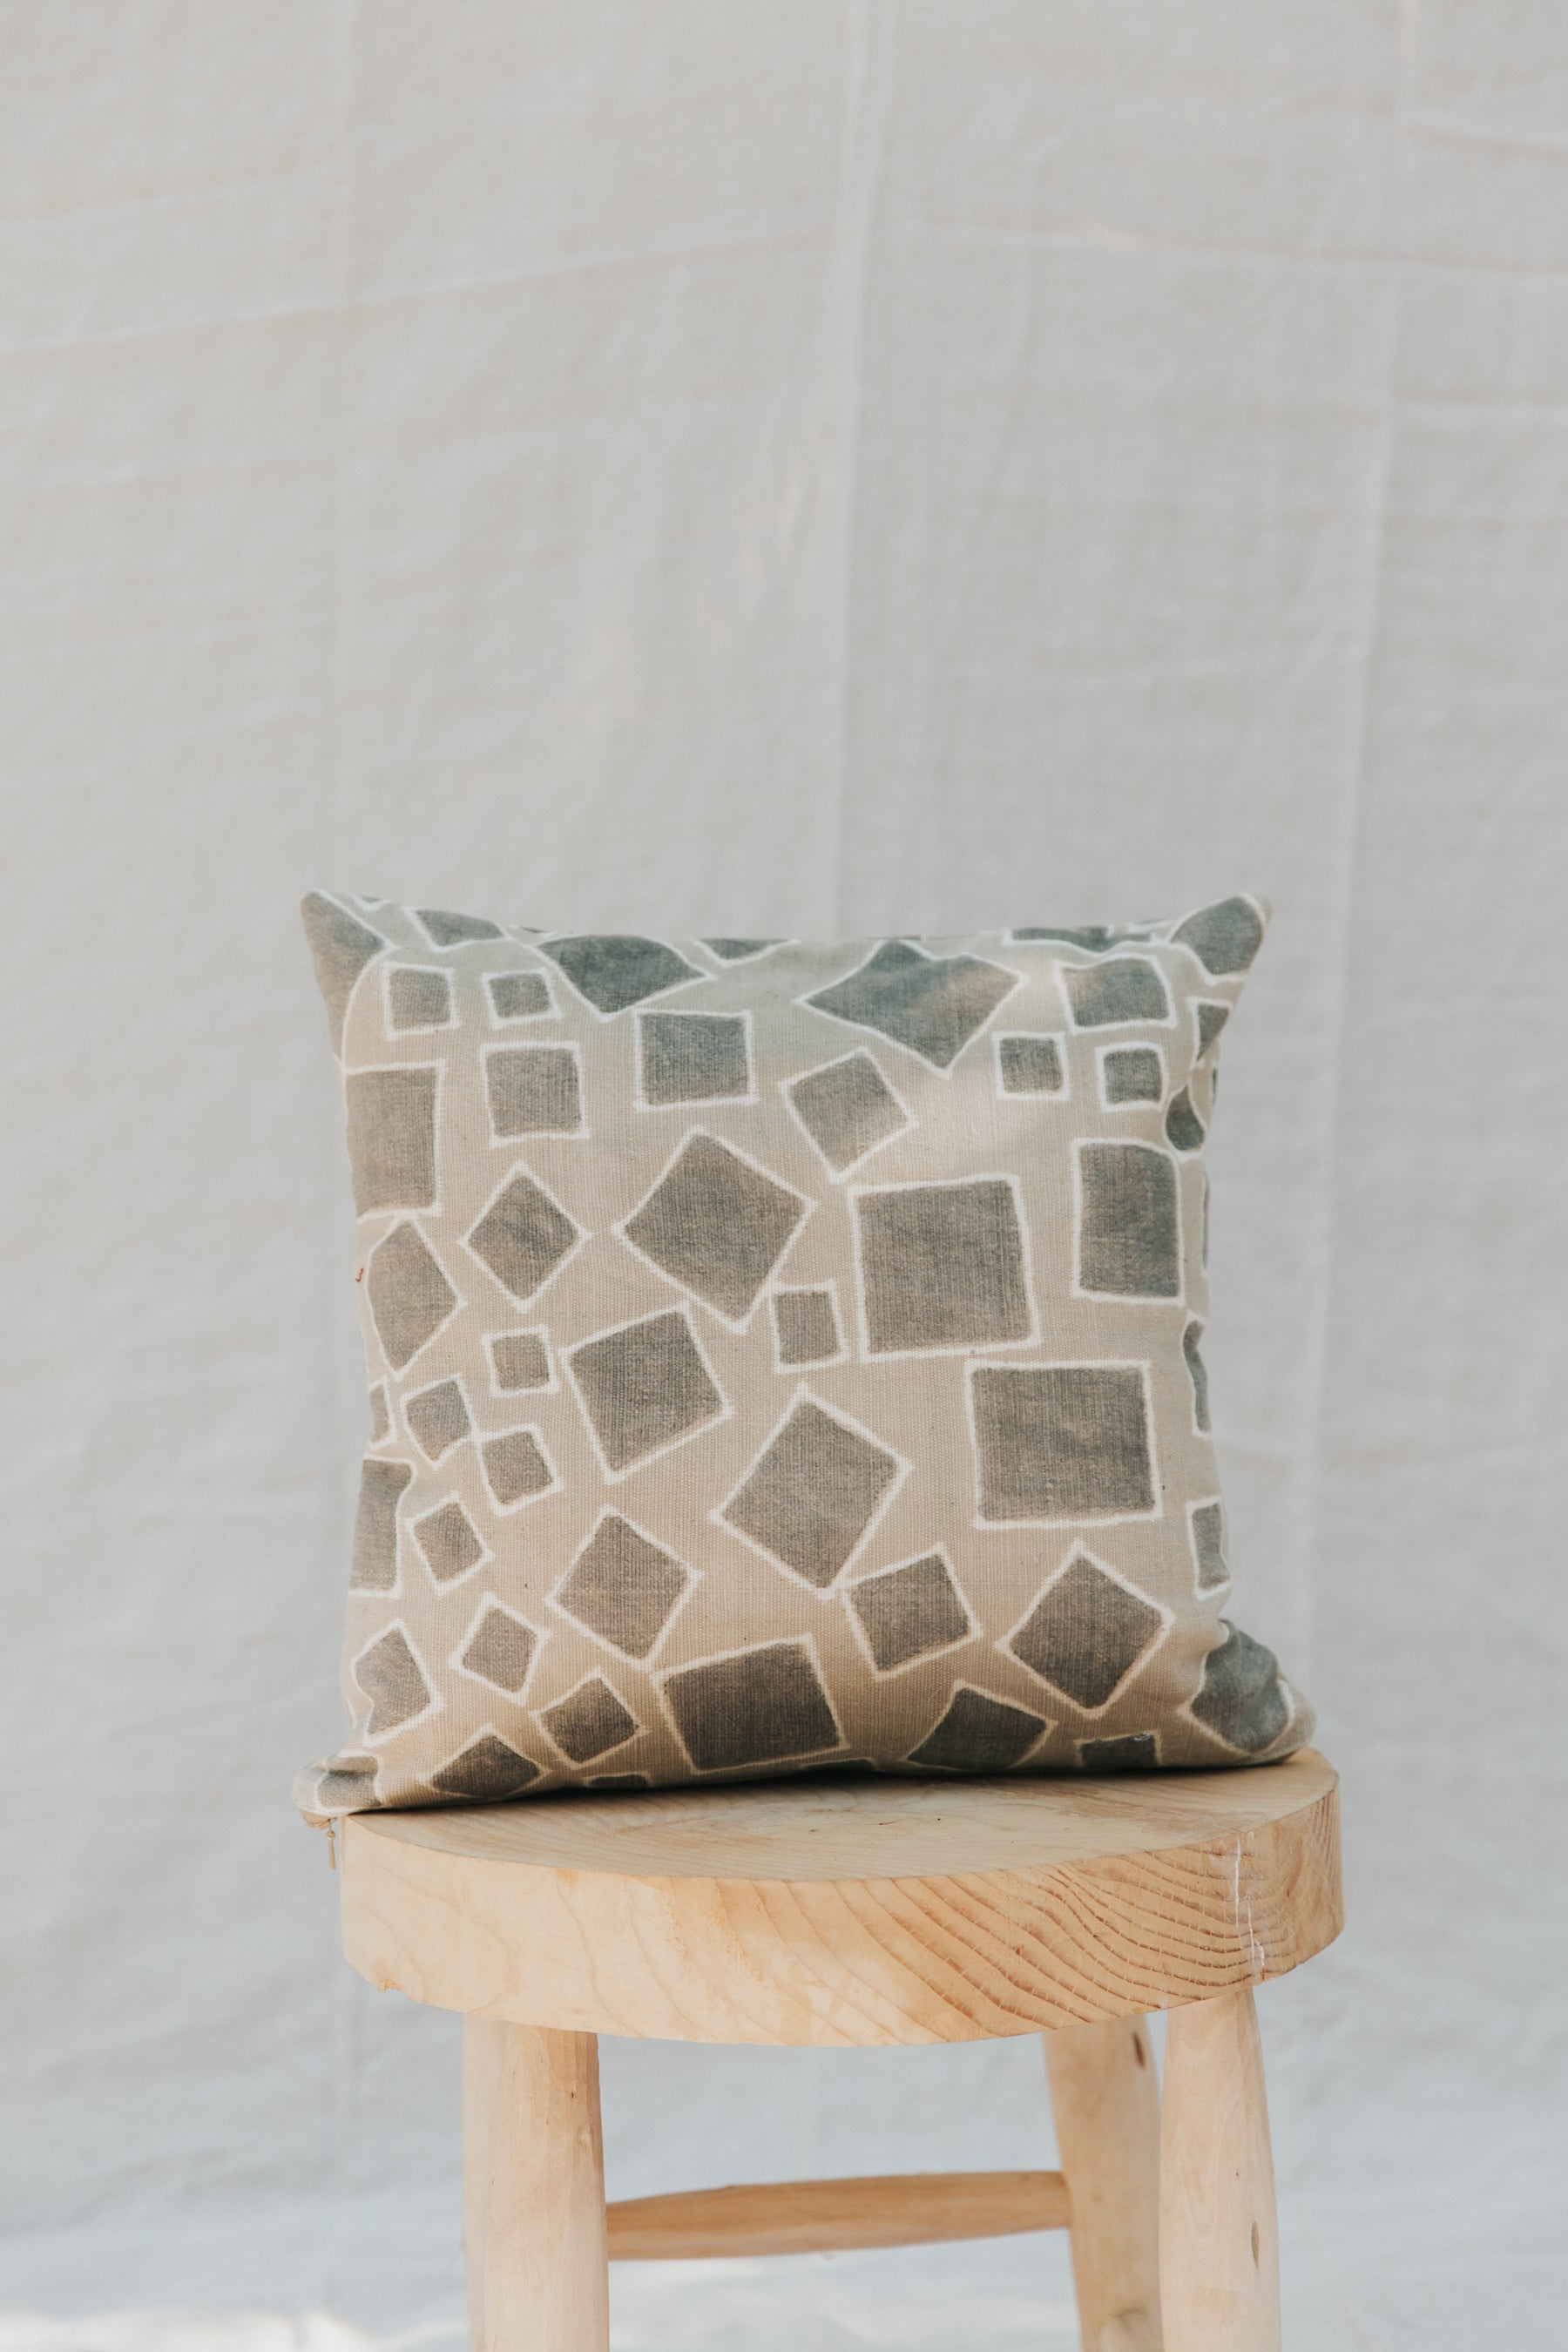 This handmade pillow features a naturally-dyed and fair trade textile from Mali. It is sewn by a resettled refugee paid above a living wage in San Diego, California. The cooperative of artisans that created this textile hires and trains underemployed and educated youth.